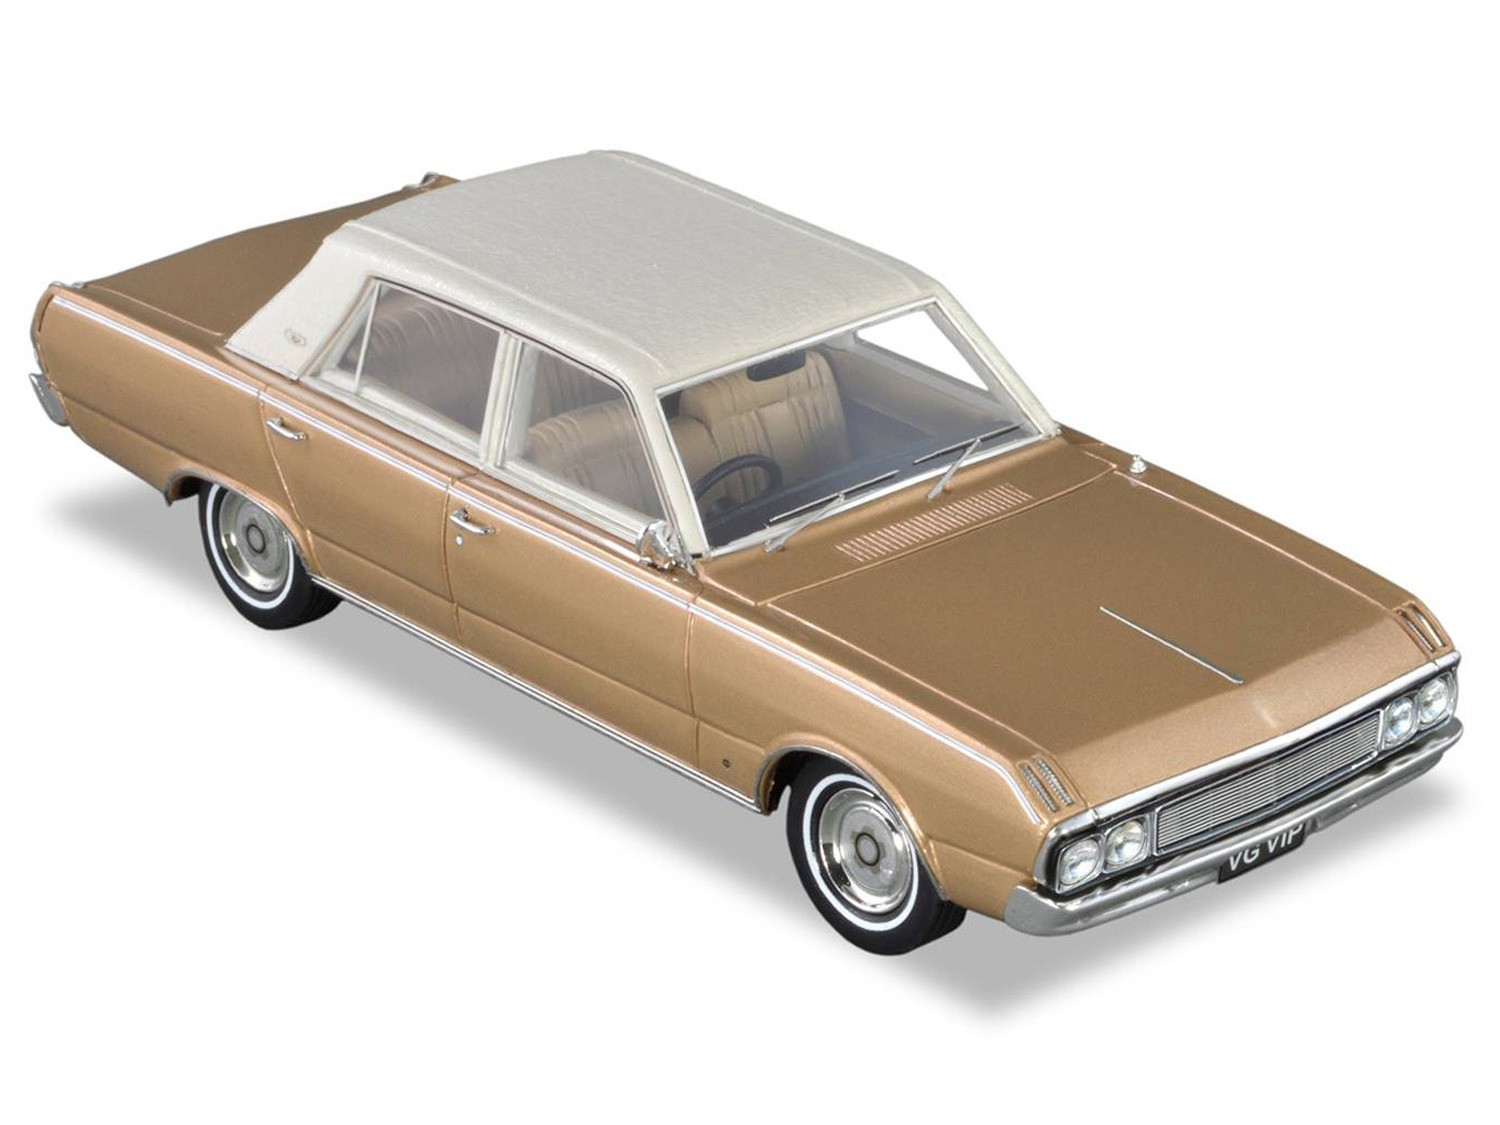 1970 Chrysler VG VIP – Gold / Cream Roof